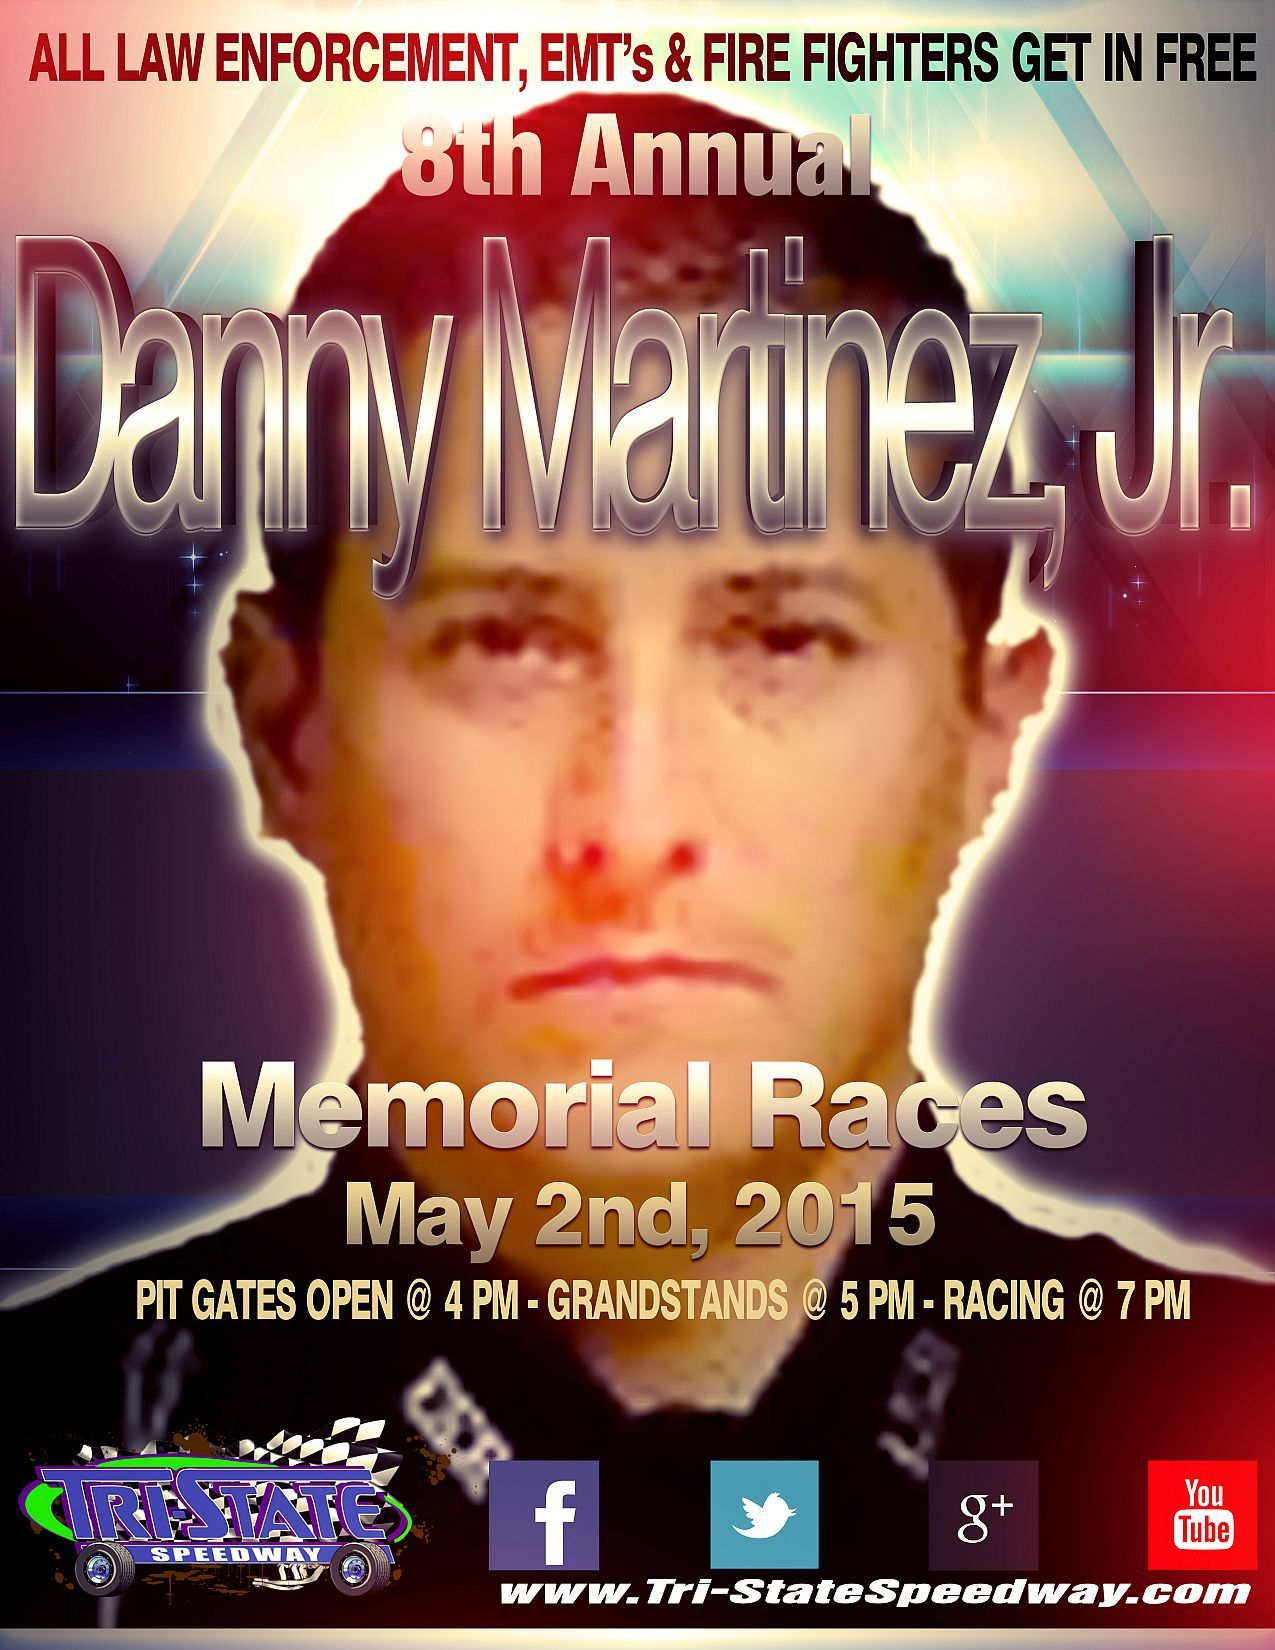 8th Annual Danny Martinez, Jr. Memorial Races and Law Enforcement, EMT and Firefighters Night